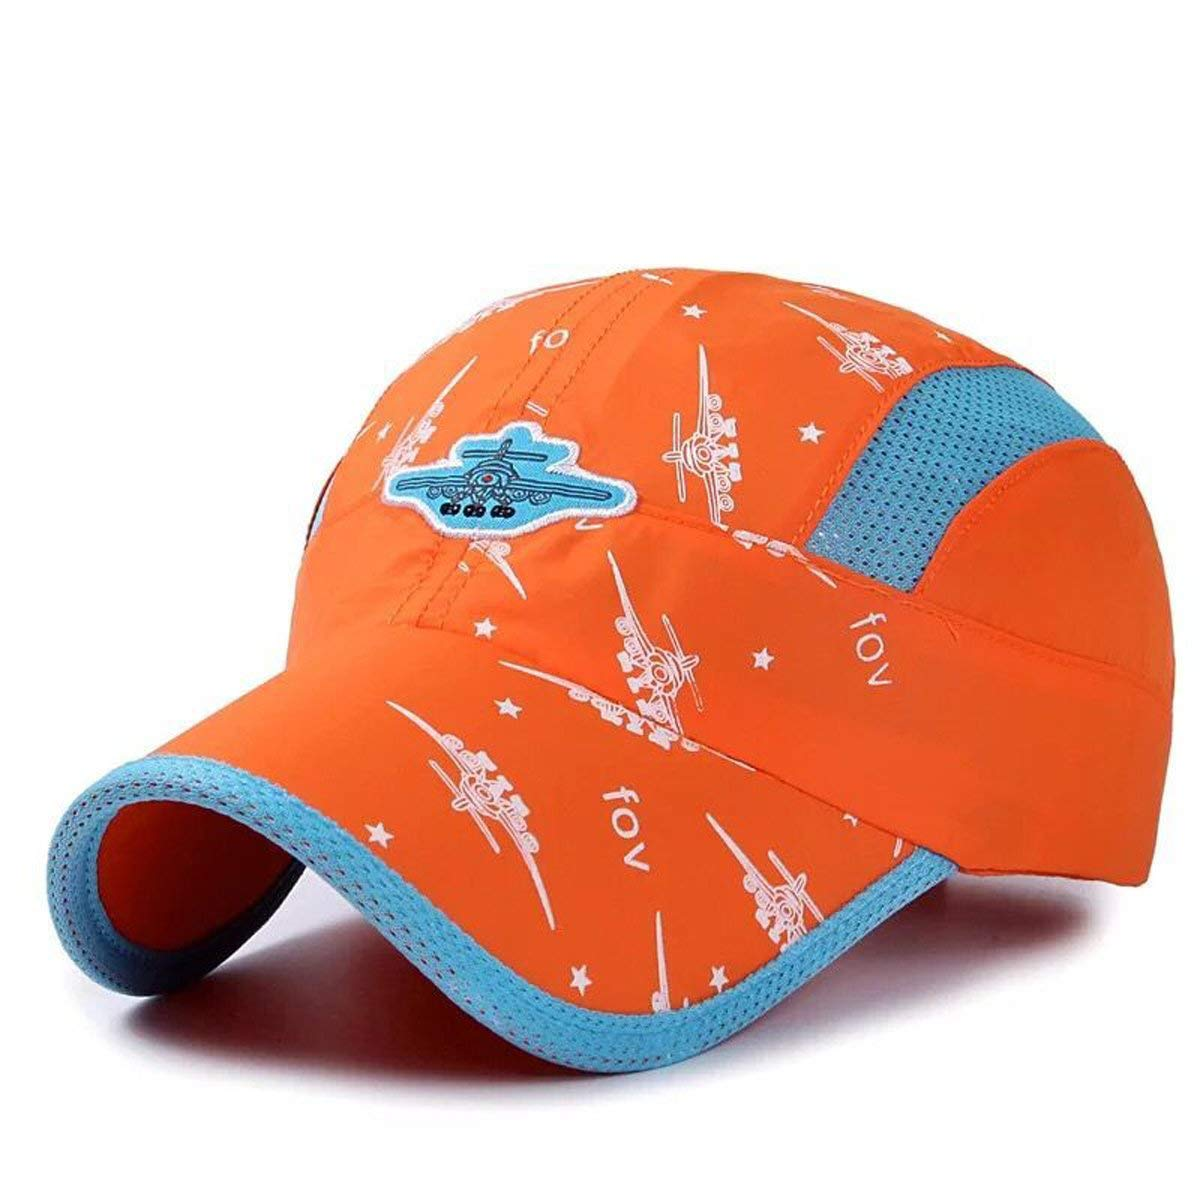 ddc98dde491 Get Quotations · JOYEBUY Kids Girl Boy Lightweight Quick Drying Sun Hat  Summer UV Protection Baseball Cap